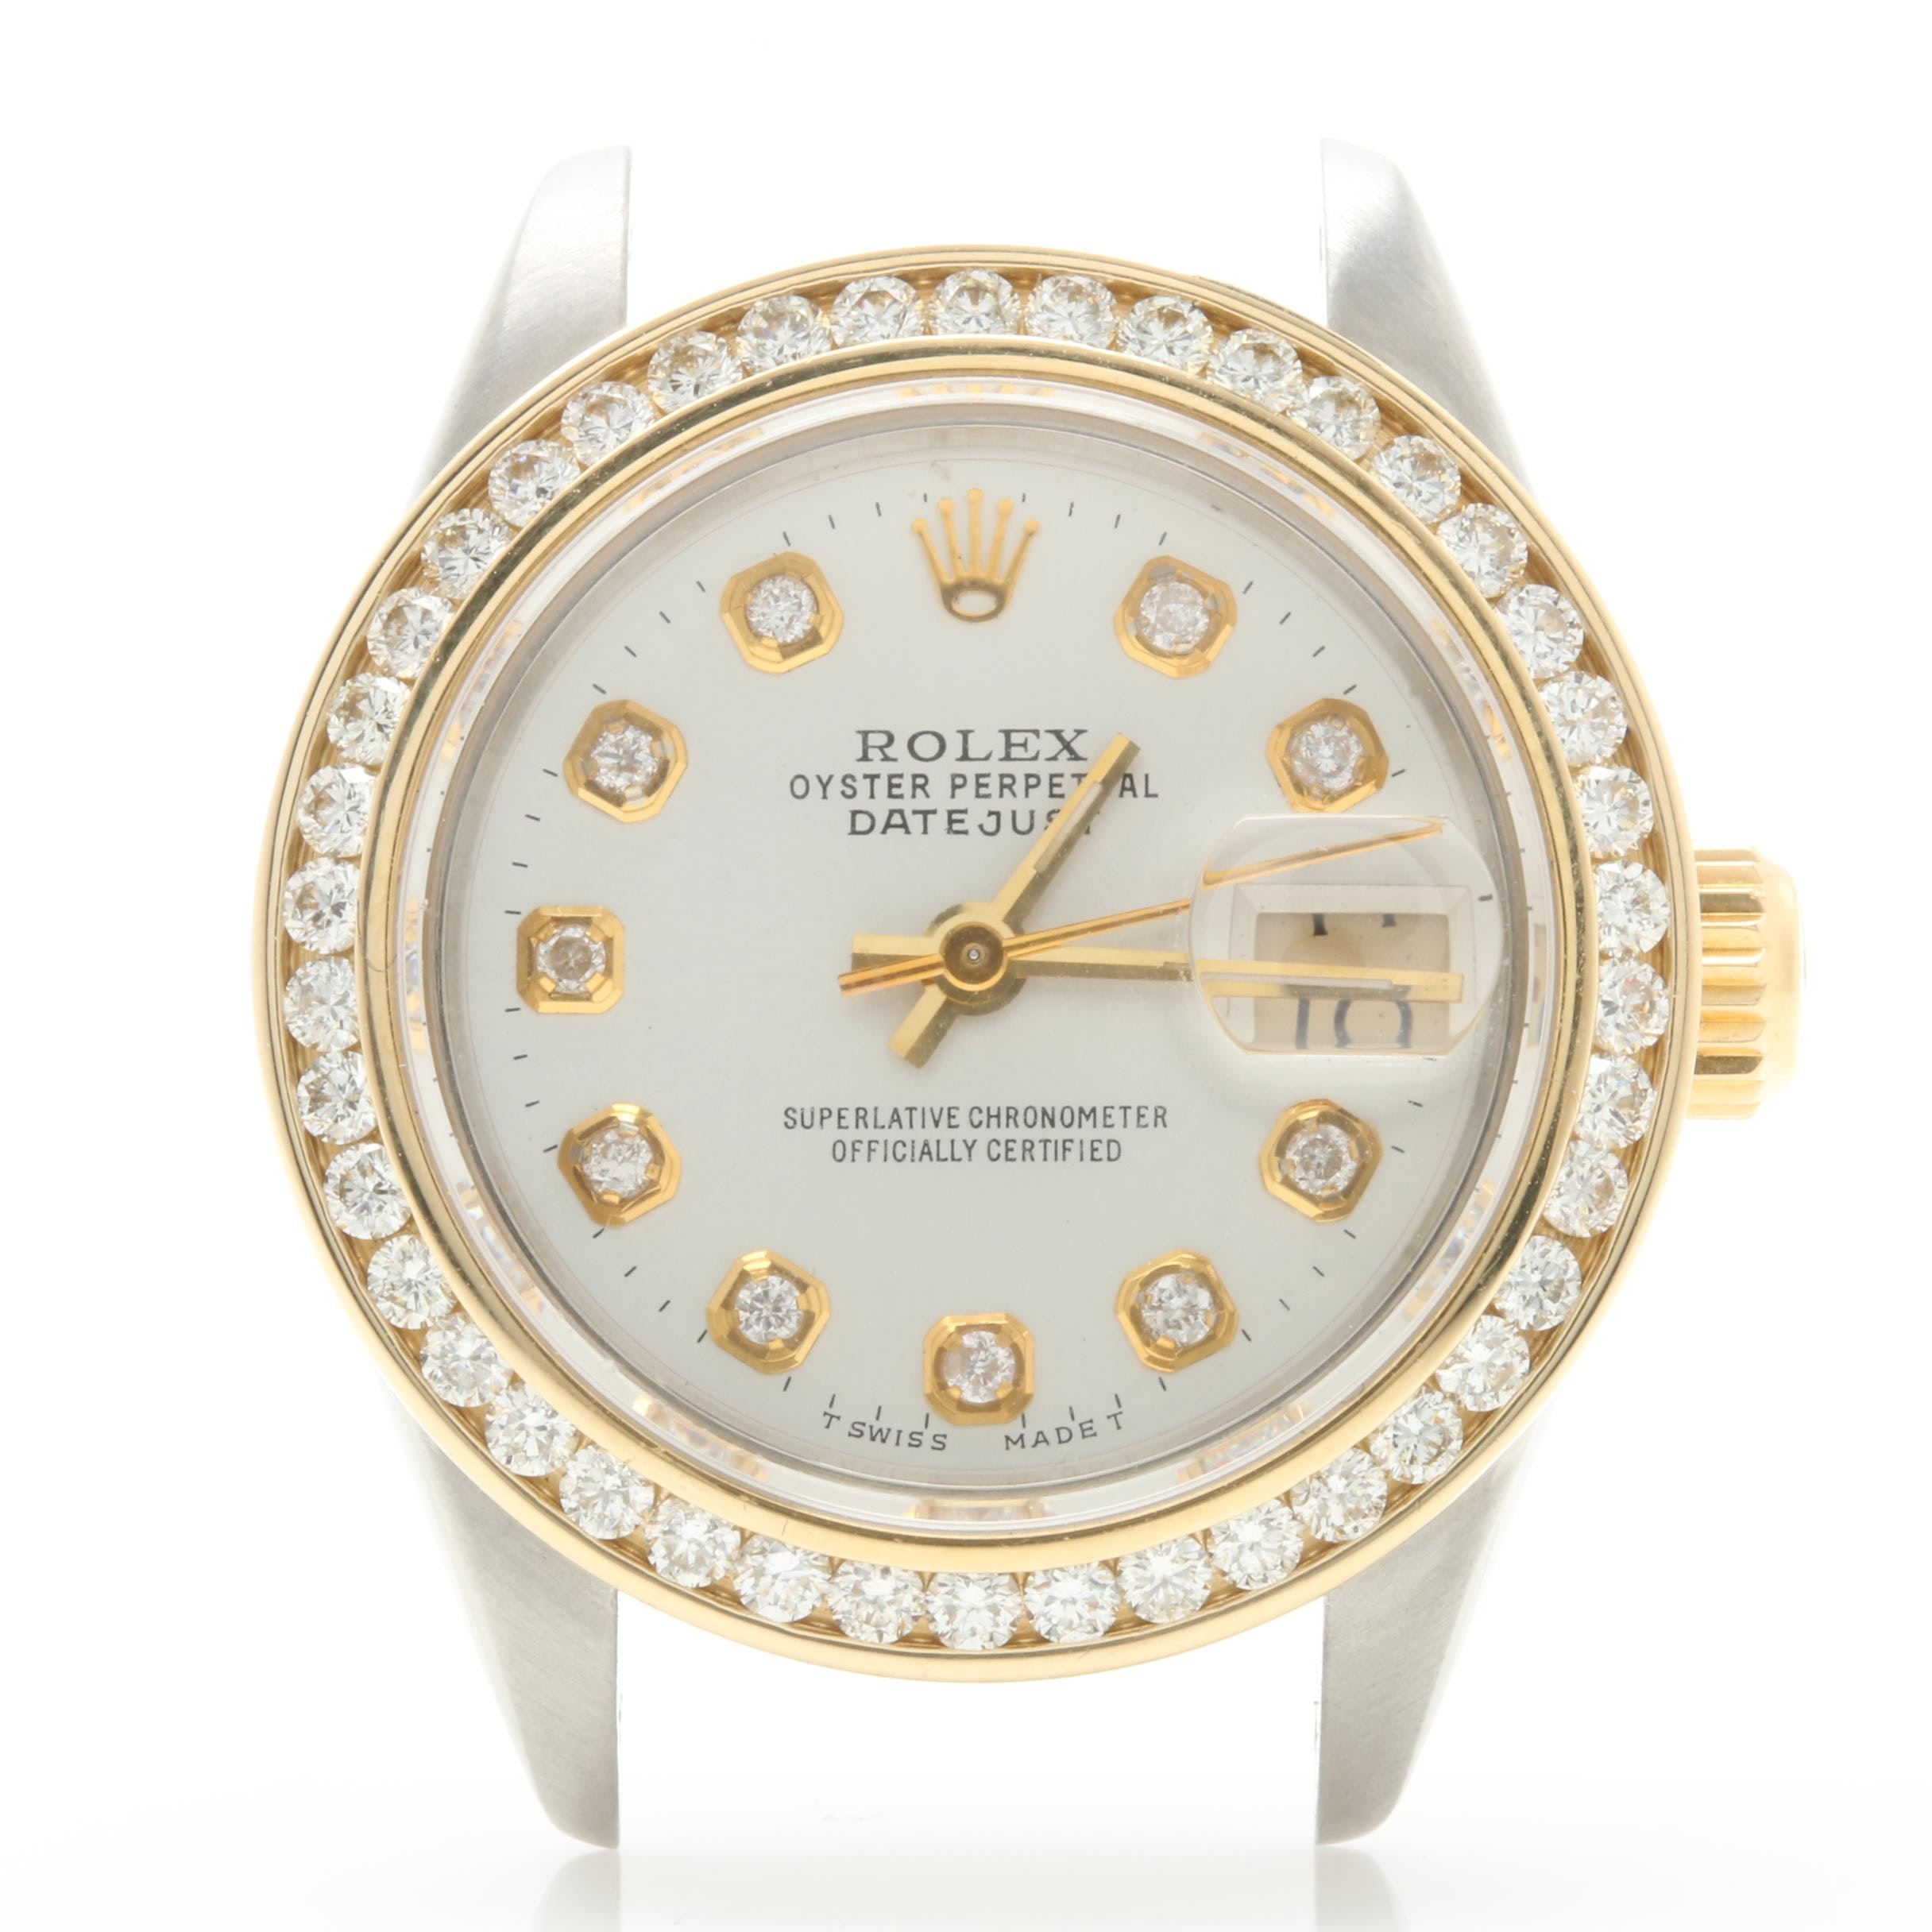 Rolex Stainless Steel and 18K Yellow Gold Watch Case with 1.15 CTW Diamonds